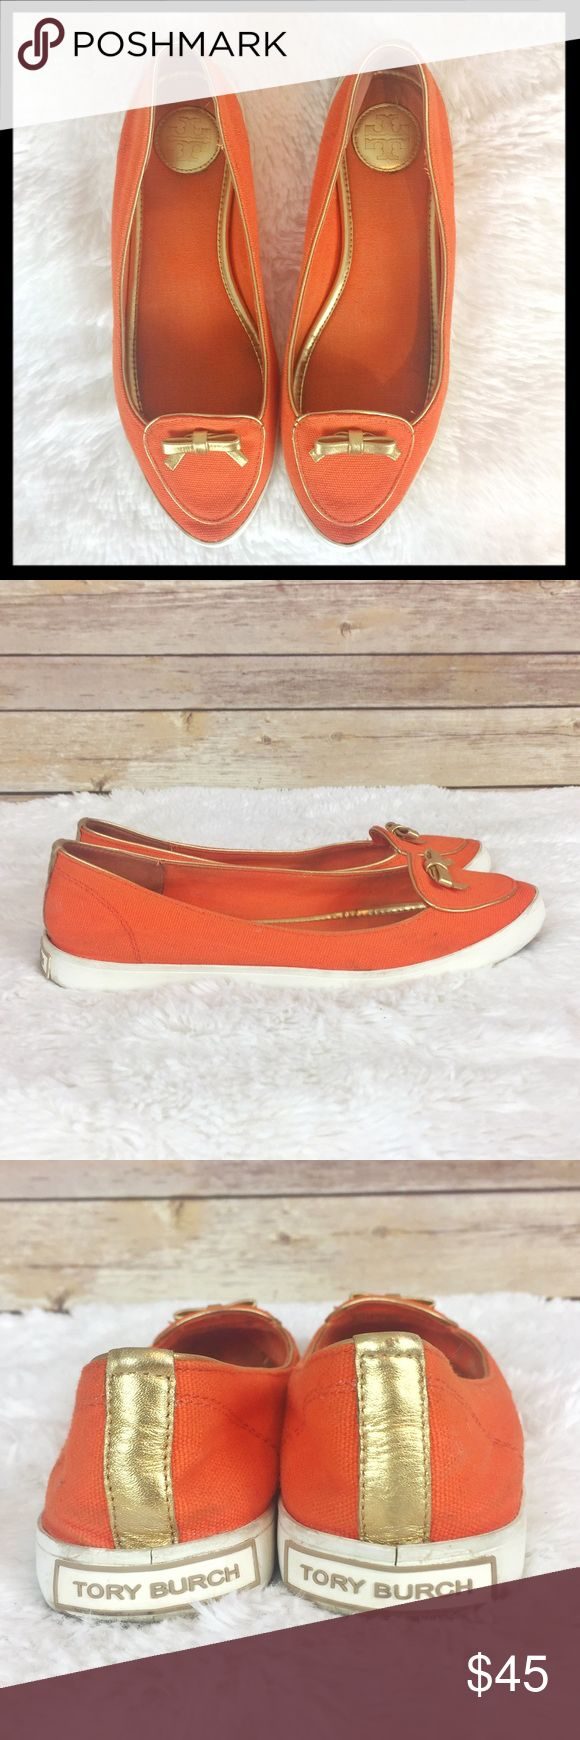 tory burch // dakota canvas bow toe slip ons flats A streamlined update to the classic tennis shoe with refined looks of a loafer with the ease and comfort of your sporty favorite. A prim gold metallic leather bow and trim add some feminine polish. Made of low-key canvas, it's the definition of casual chic. Fabric upper. Orange with a gold leather bow. Logo at heel. Rubber sole. Preloved with some signs of wear as shown (faint dirt marks, wear to interior) but overall great preowned…